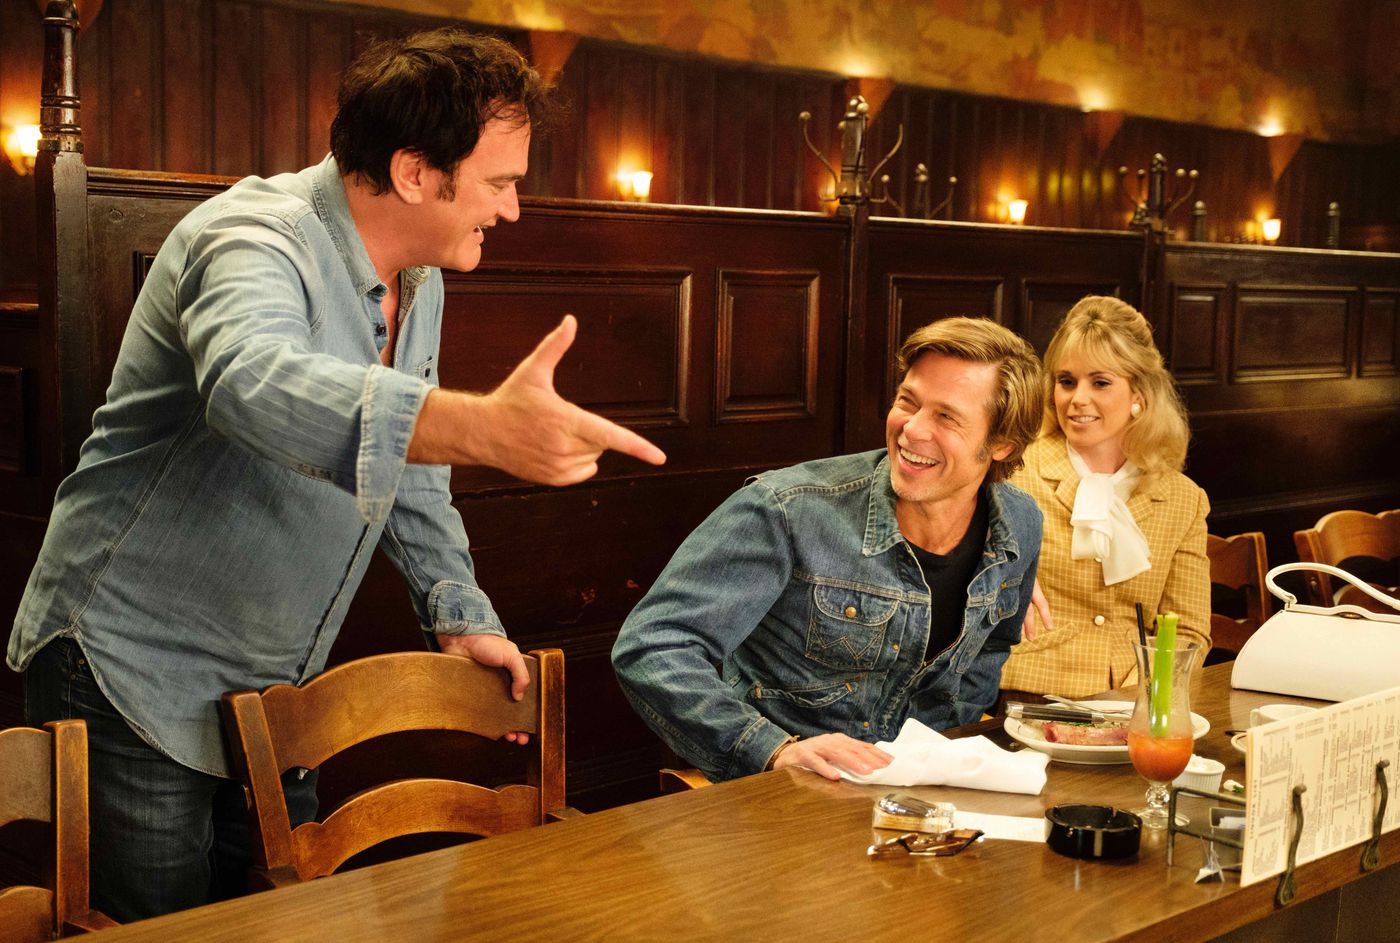 once_upon_a_time_in_hollywood_QT9_R_00291_2_01.jpg